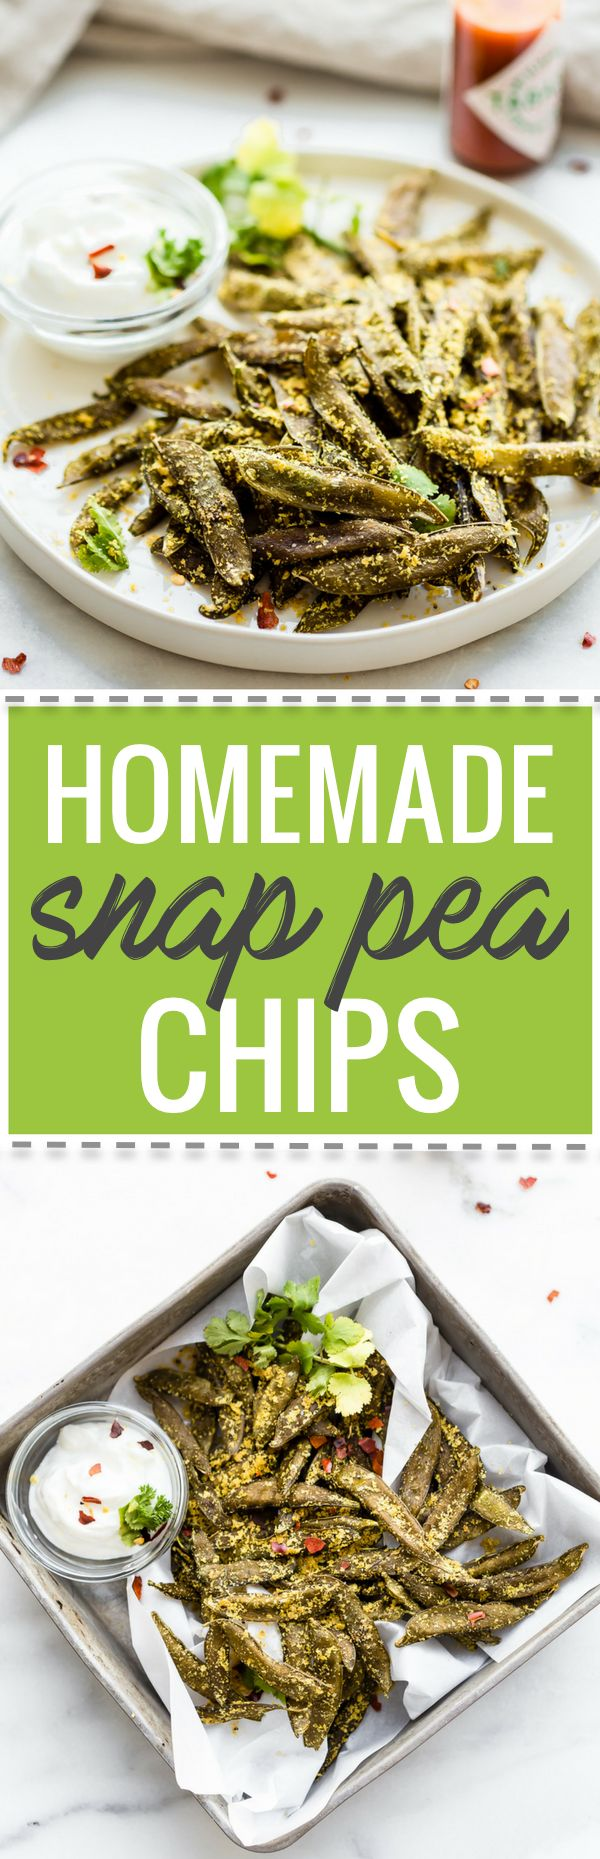 How to Make Homemade Snap Pea Chips in the oven or dehydrator! Have you ever wanted to make your own snap pea chips and save on money? Well, it's quite an easy recipe. Just season to your liking and pop in the oven or dehydrator. All it's takes is 3 ingredients! A Vegan, Paleo, and budget friendly snap pea chips recipe. www.cottercrunch.con